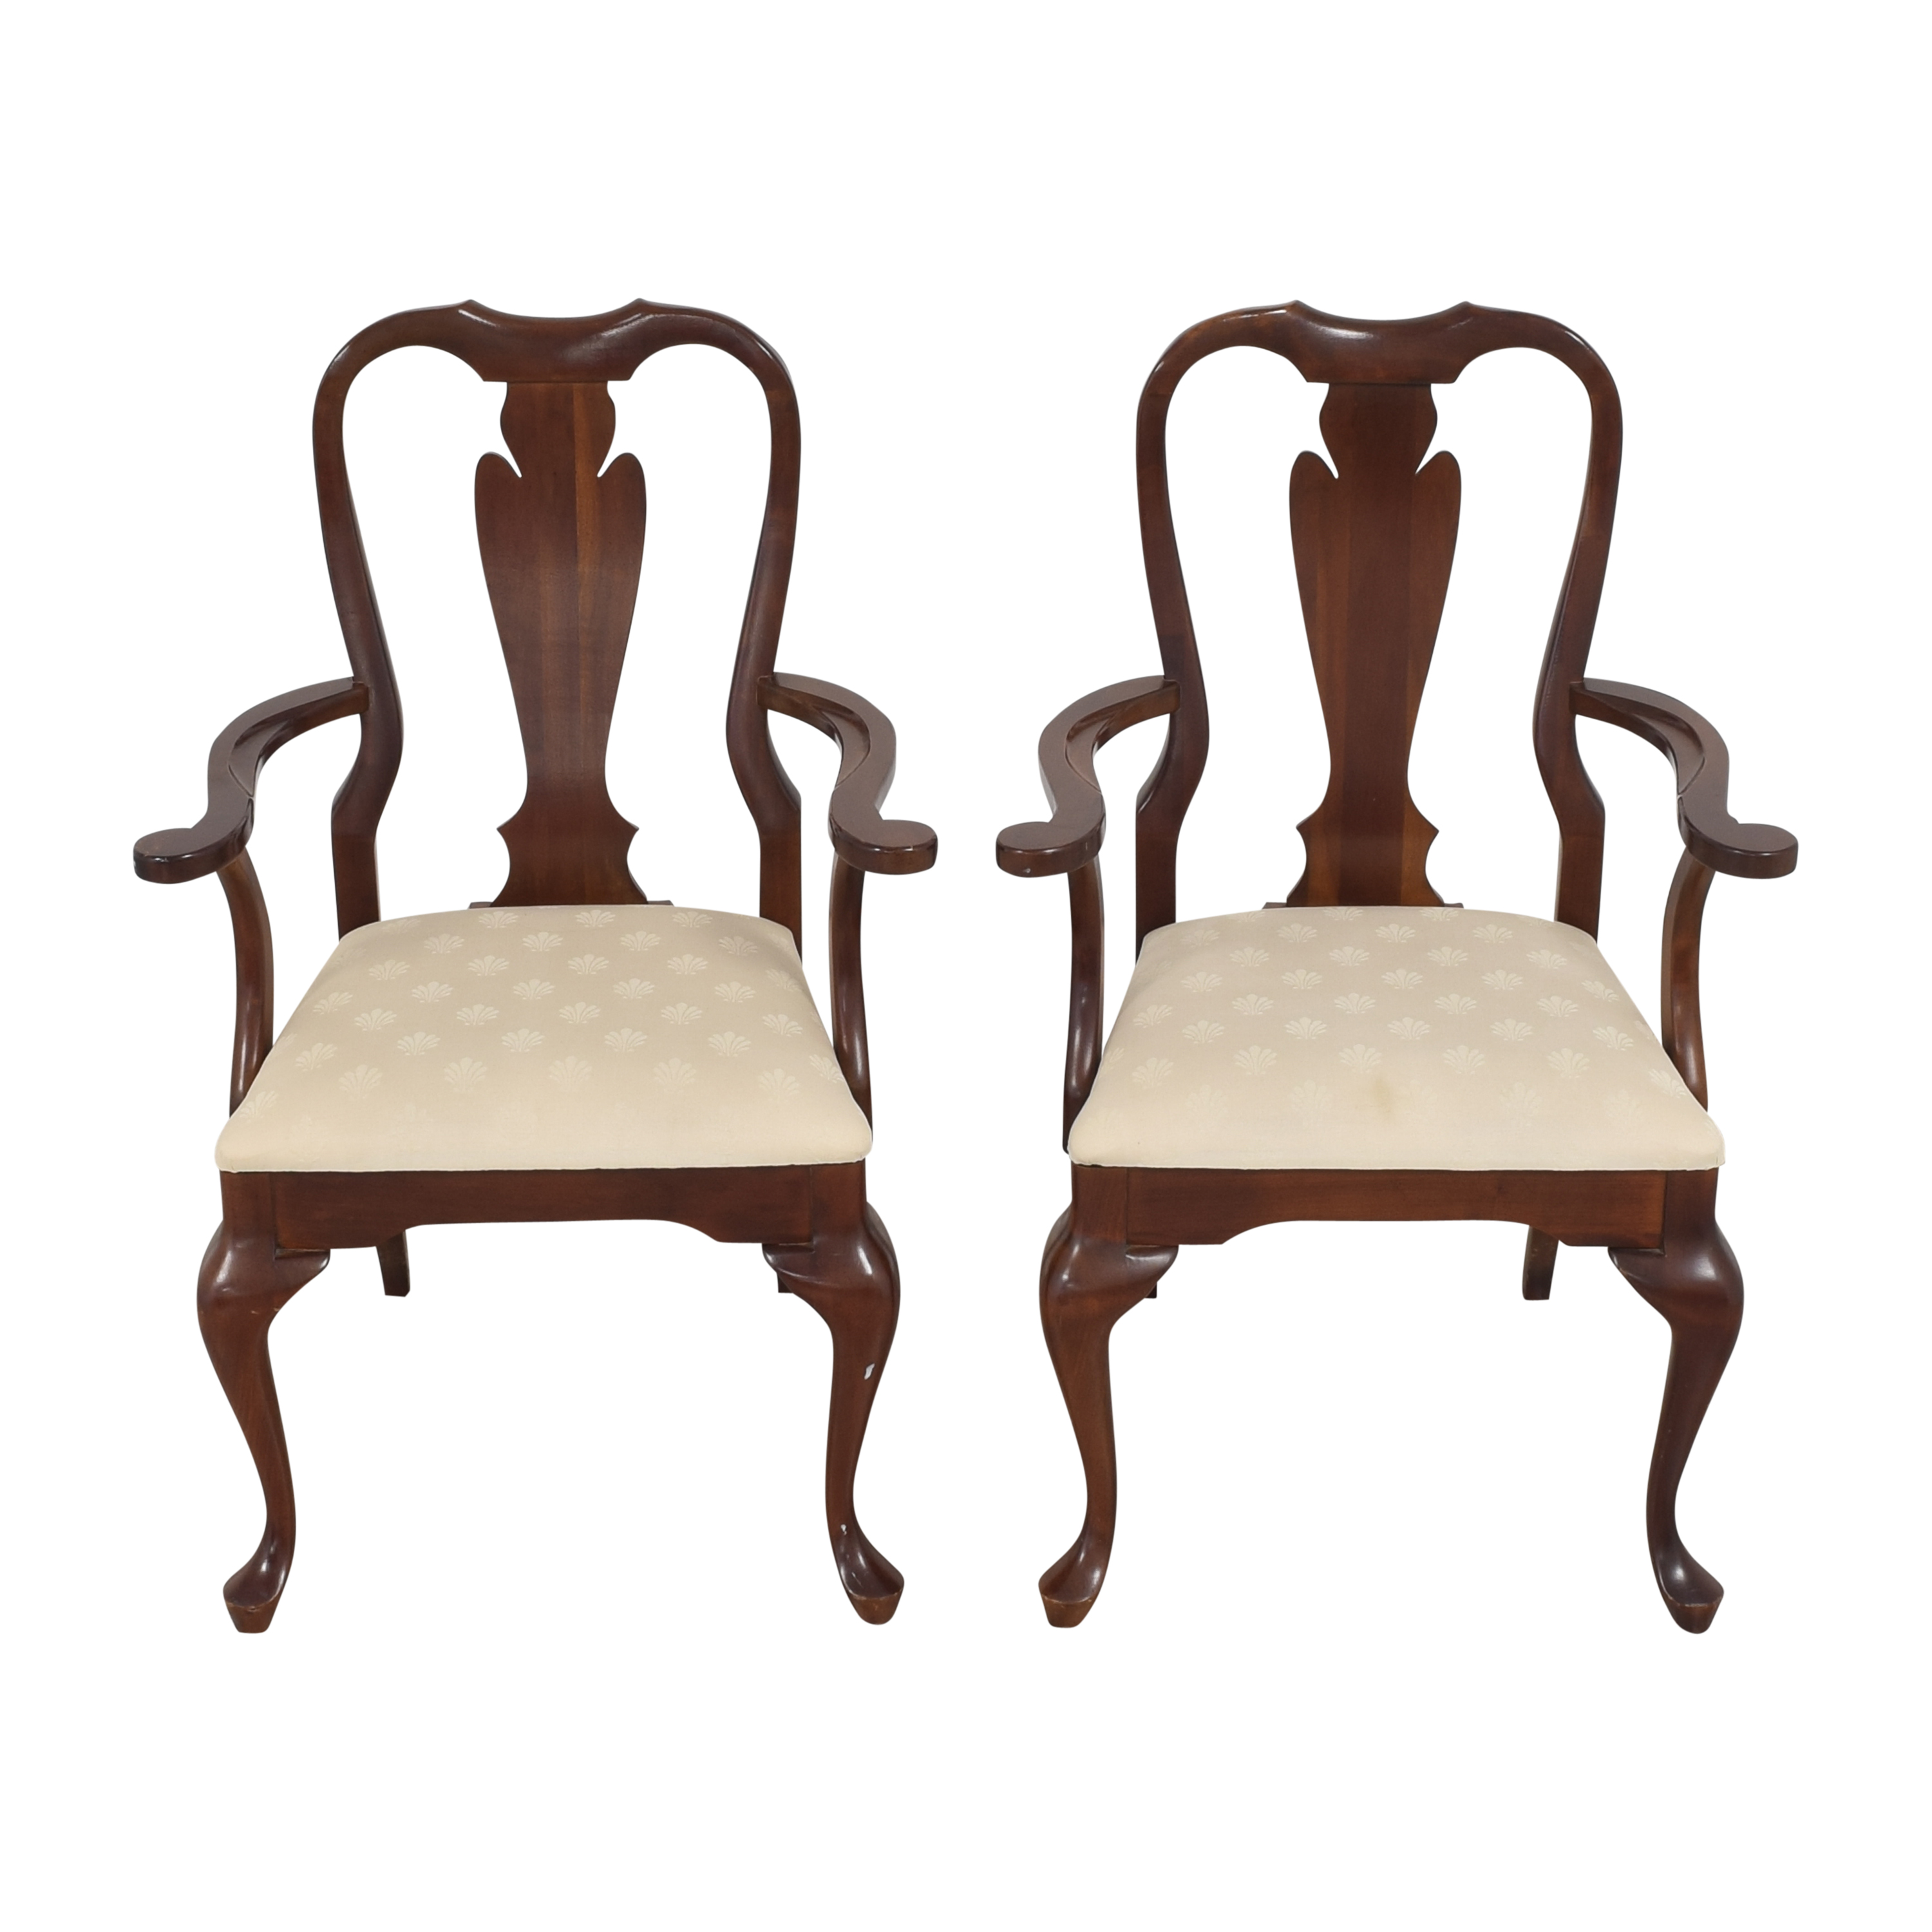 Cresent Furniture Cresent Furniture Queen Anne Dining Arm Chairs discount